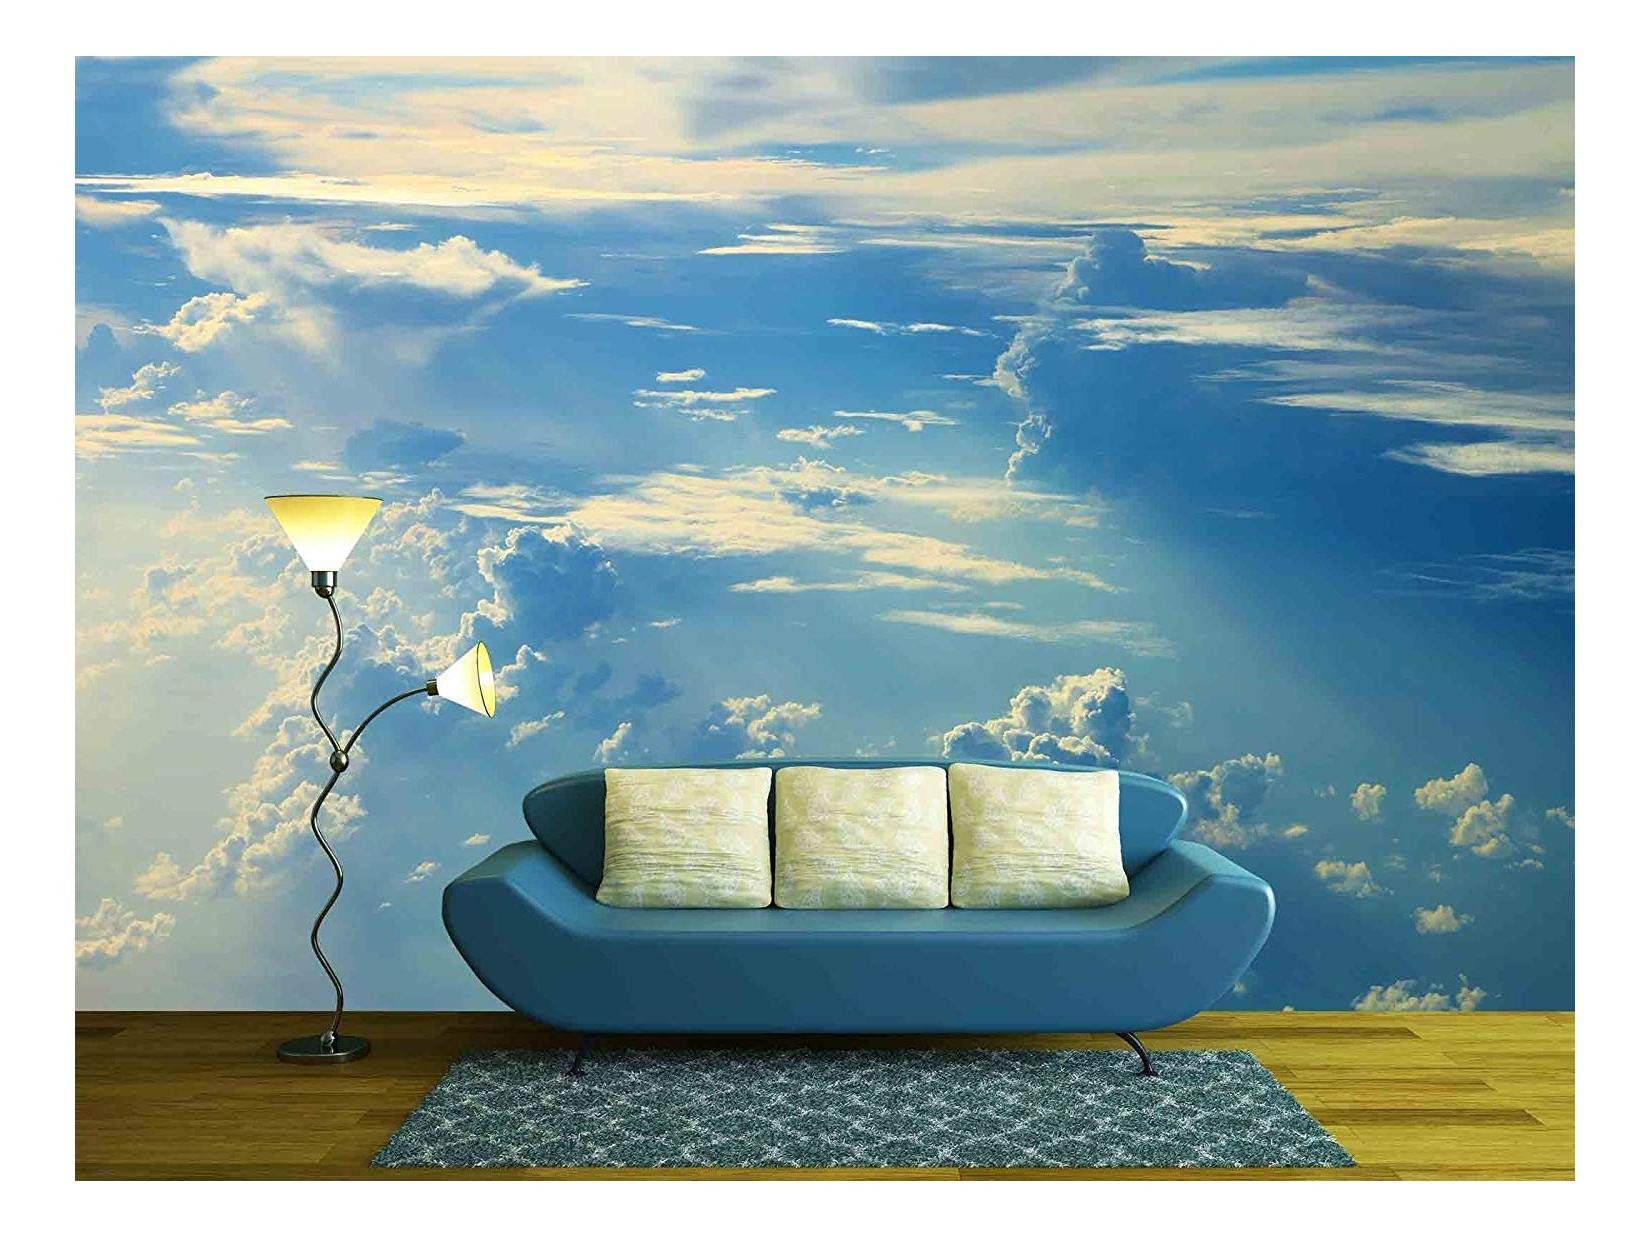 wall26 - Blue Sky Clouds,Blue Sky with Clouds - Removable Wall Mural | Self-Adhesive Large Wallpaper - 100x144 inches by wall26 (Image #1)